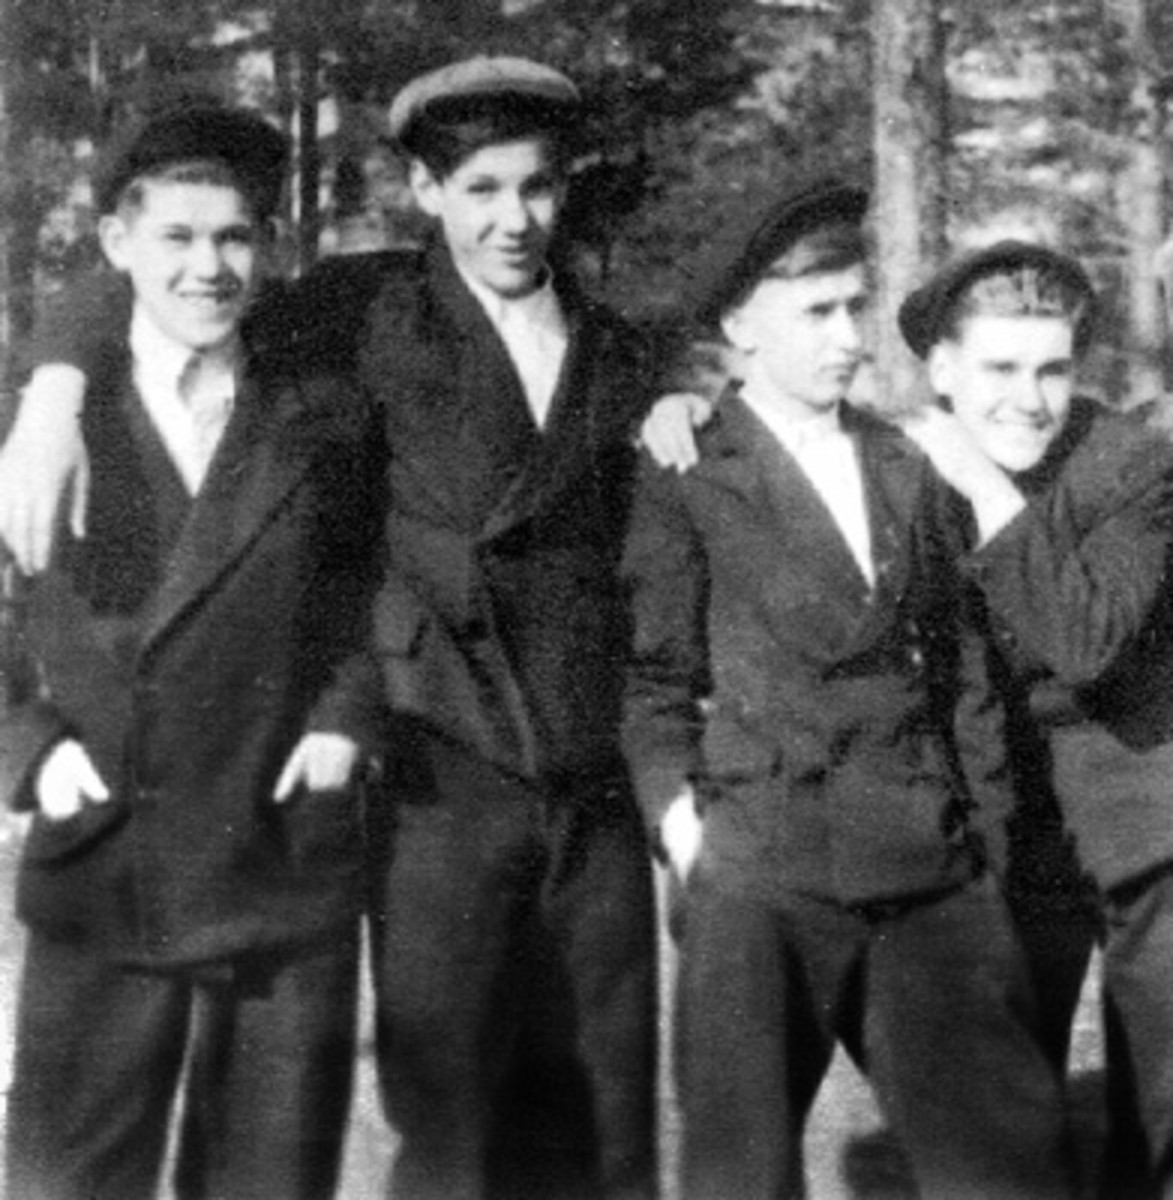 Yeltsin as a young boy.